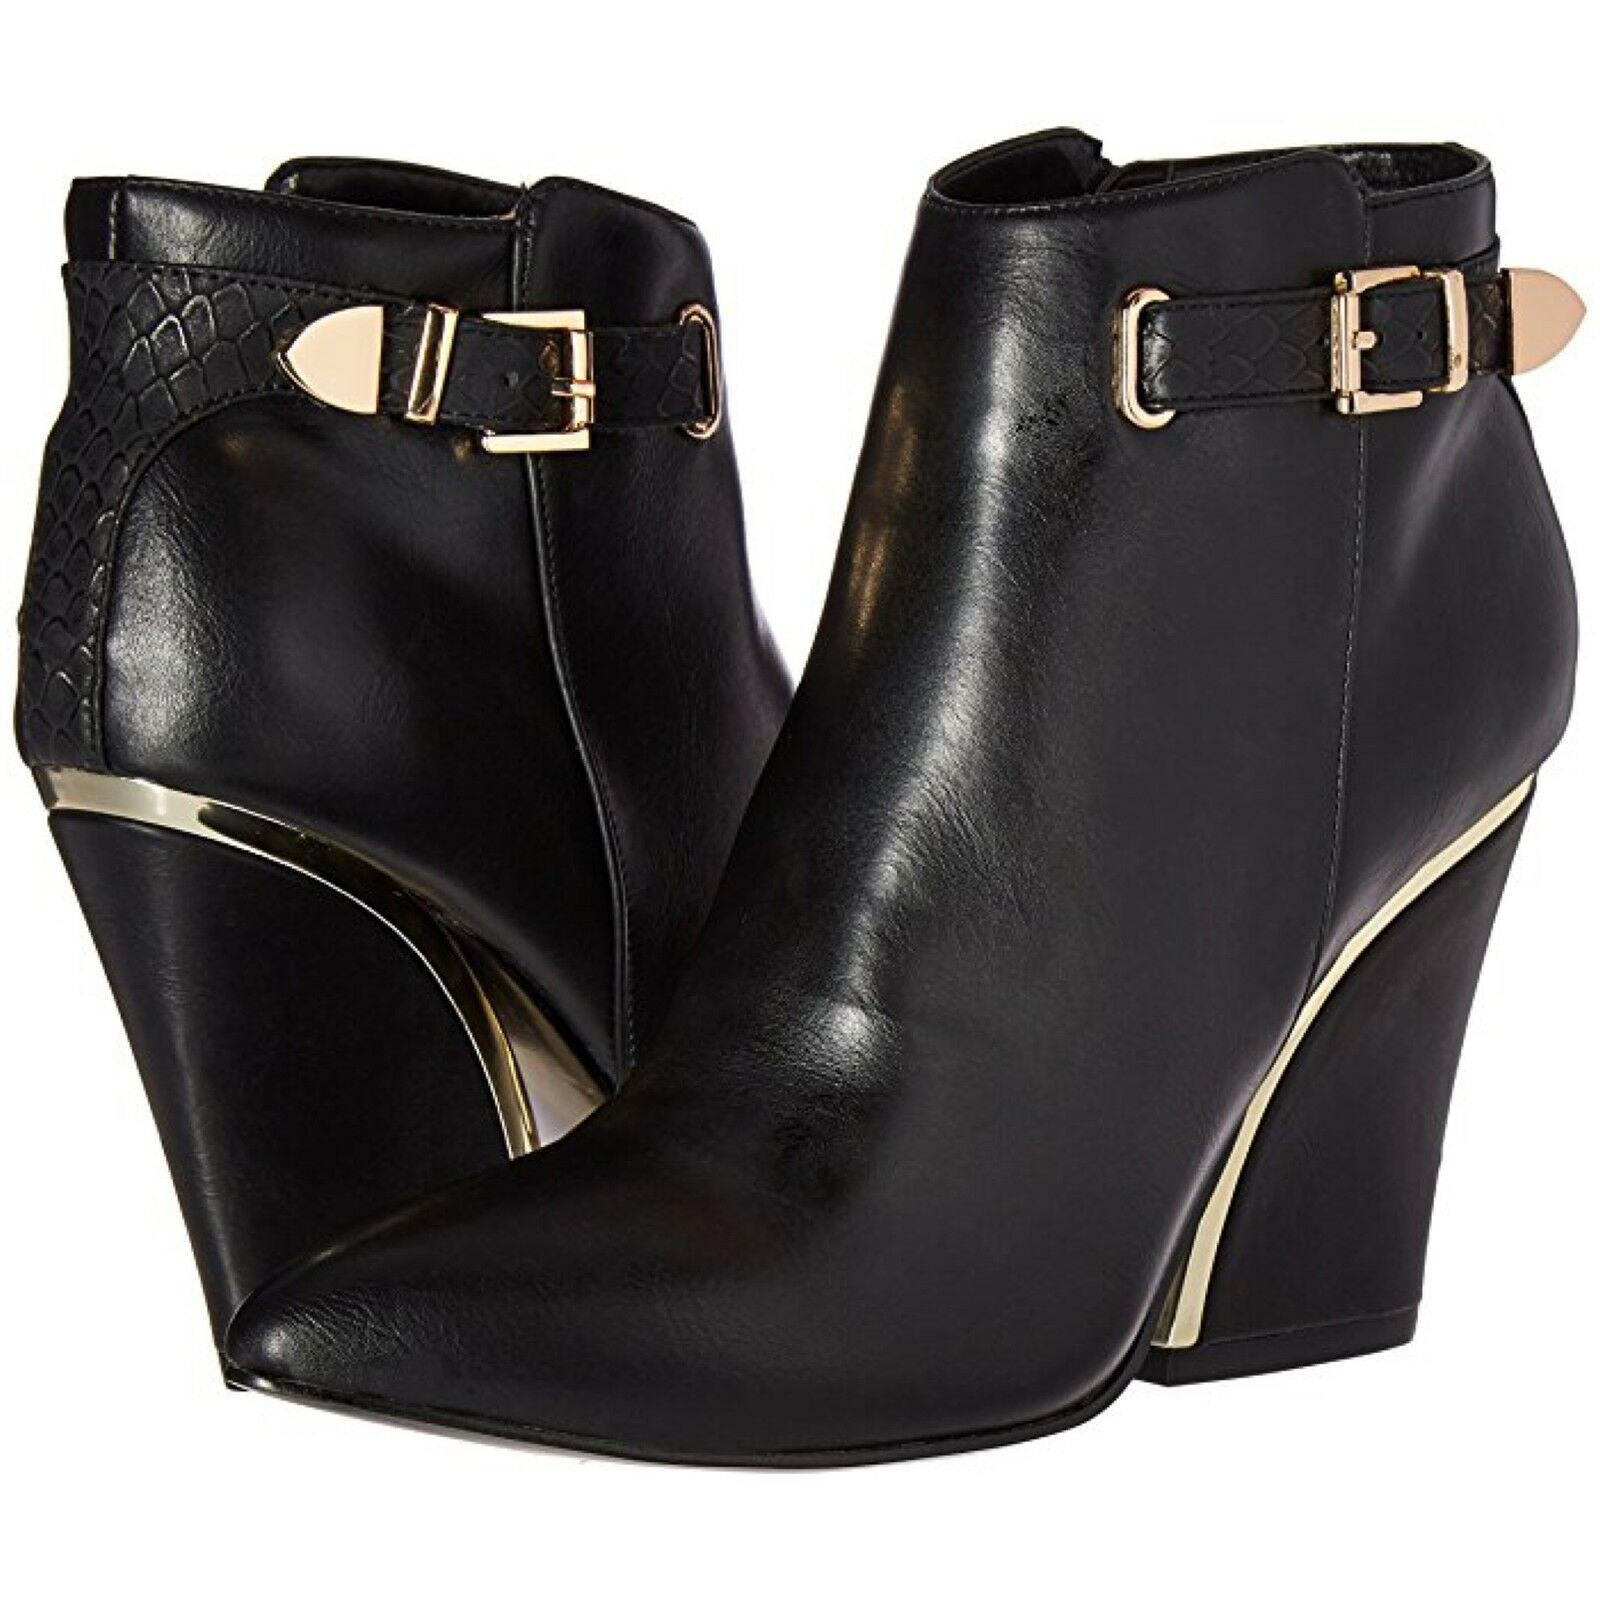 Ankle boot Gone Bannana by Luichiny